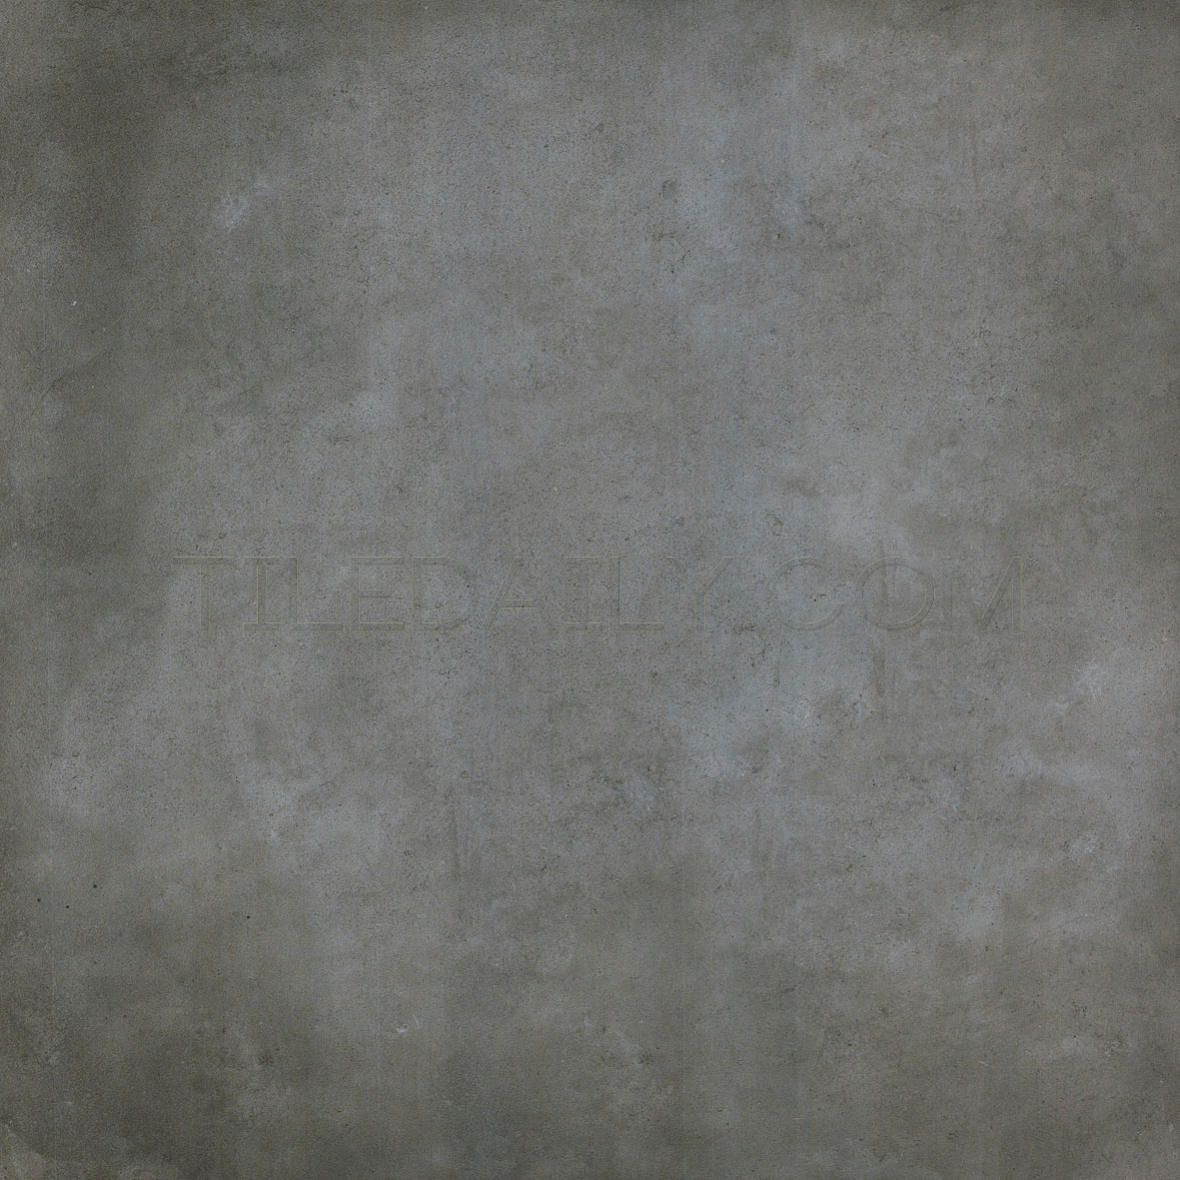 24x24 Cement Series Porcelain Tile, Dark Grey at TileDaily